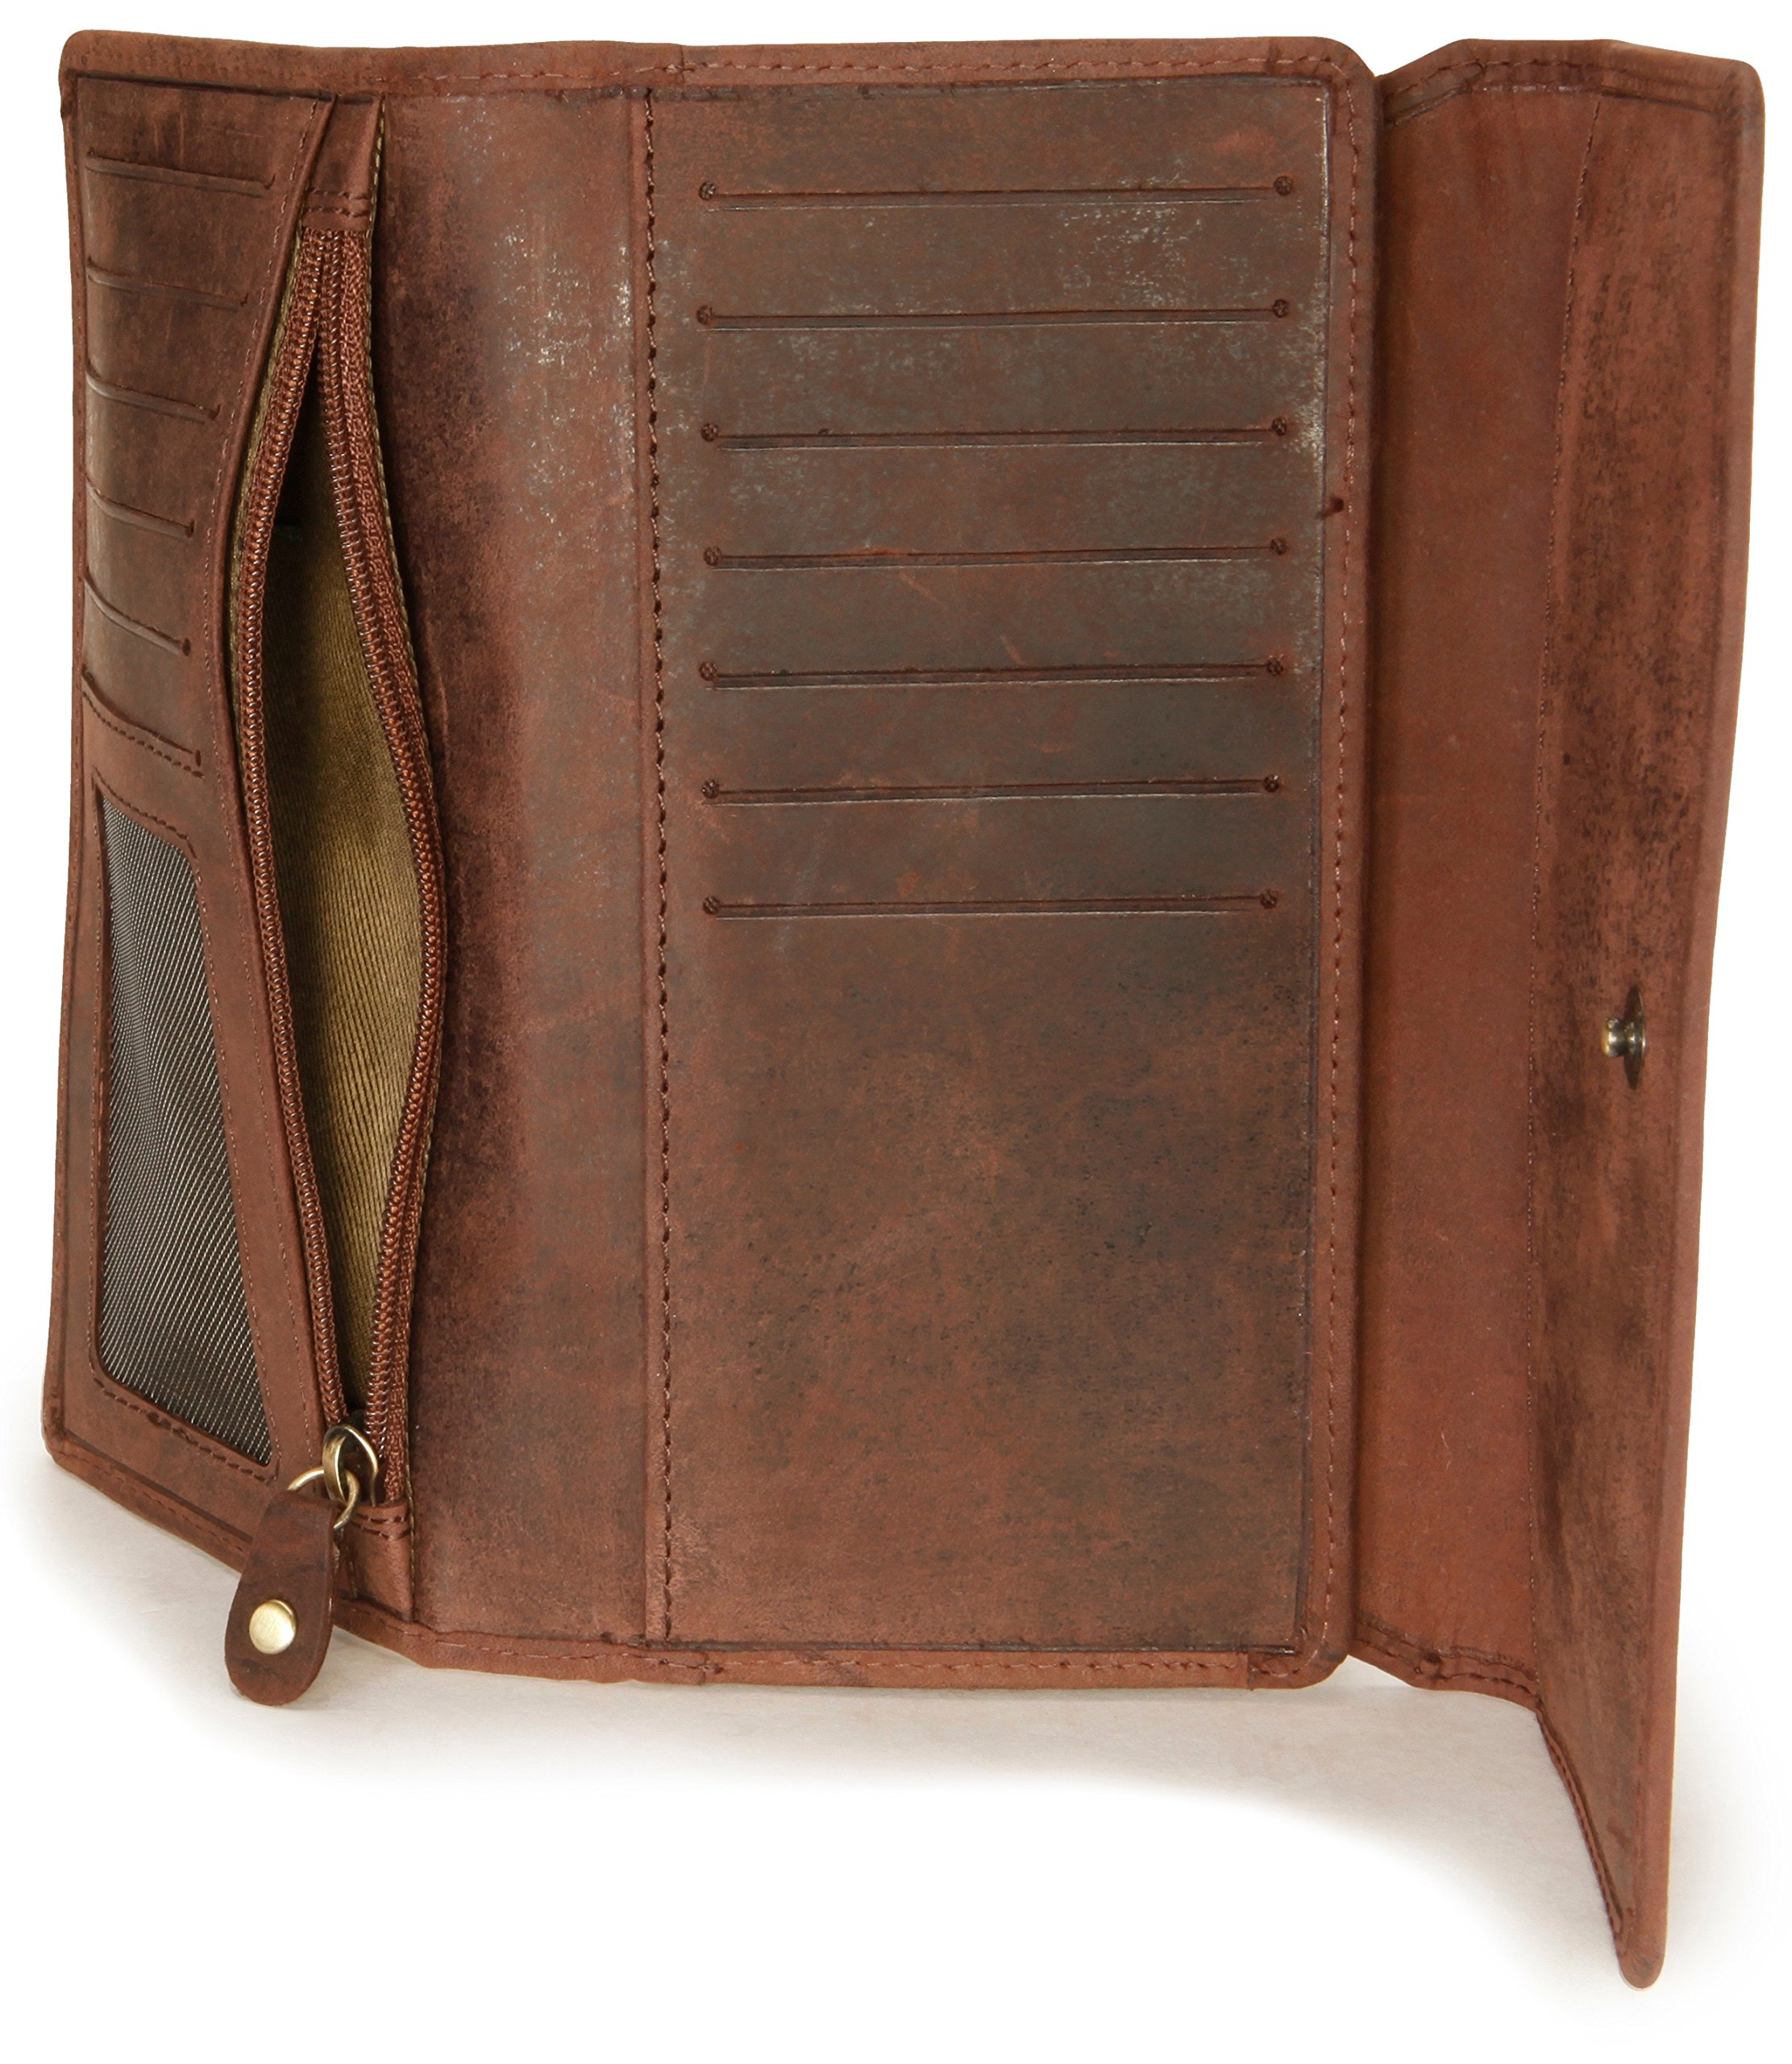 LEABAGS Charlotte genuine buffalo leather women's wallet in vintage style - Nutmeg by LEABAGS (Image #8)